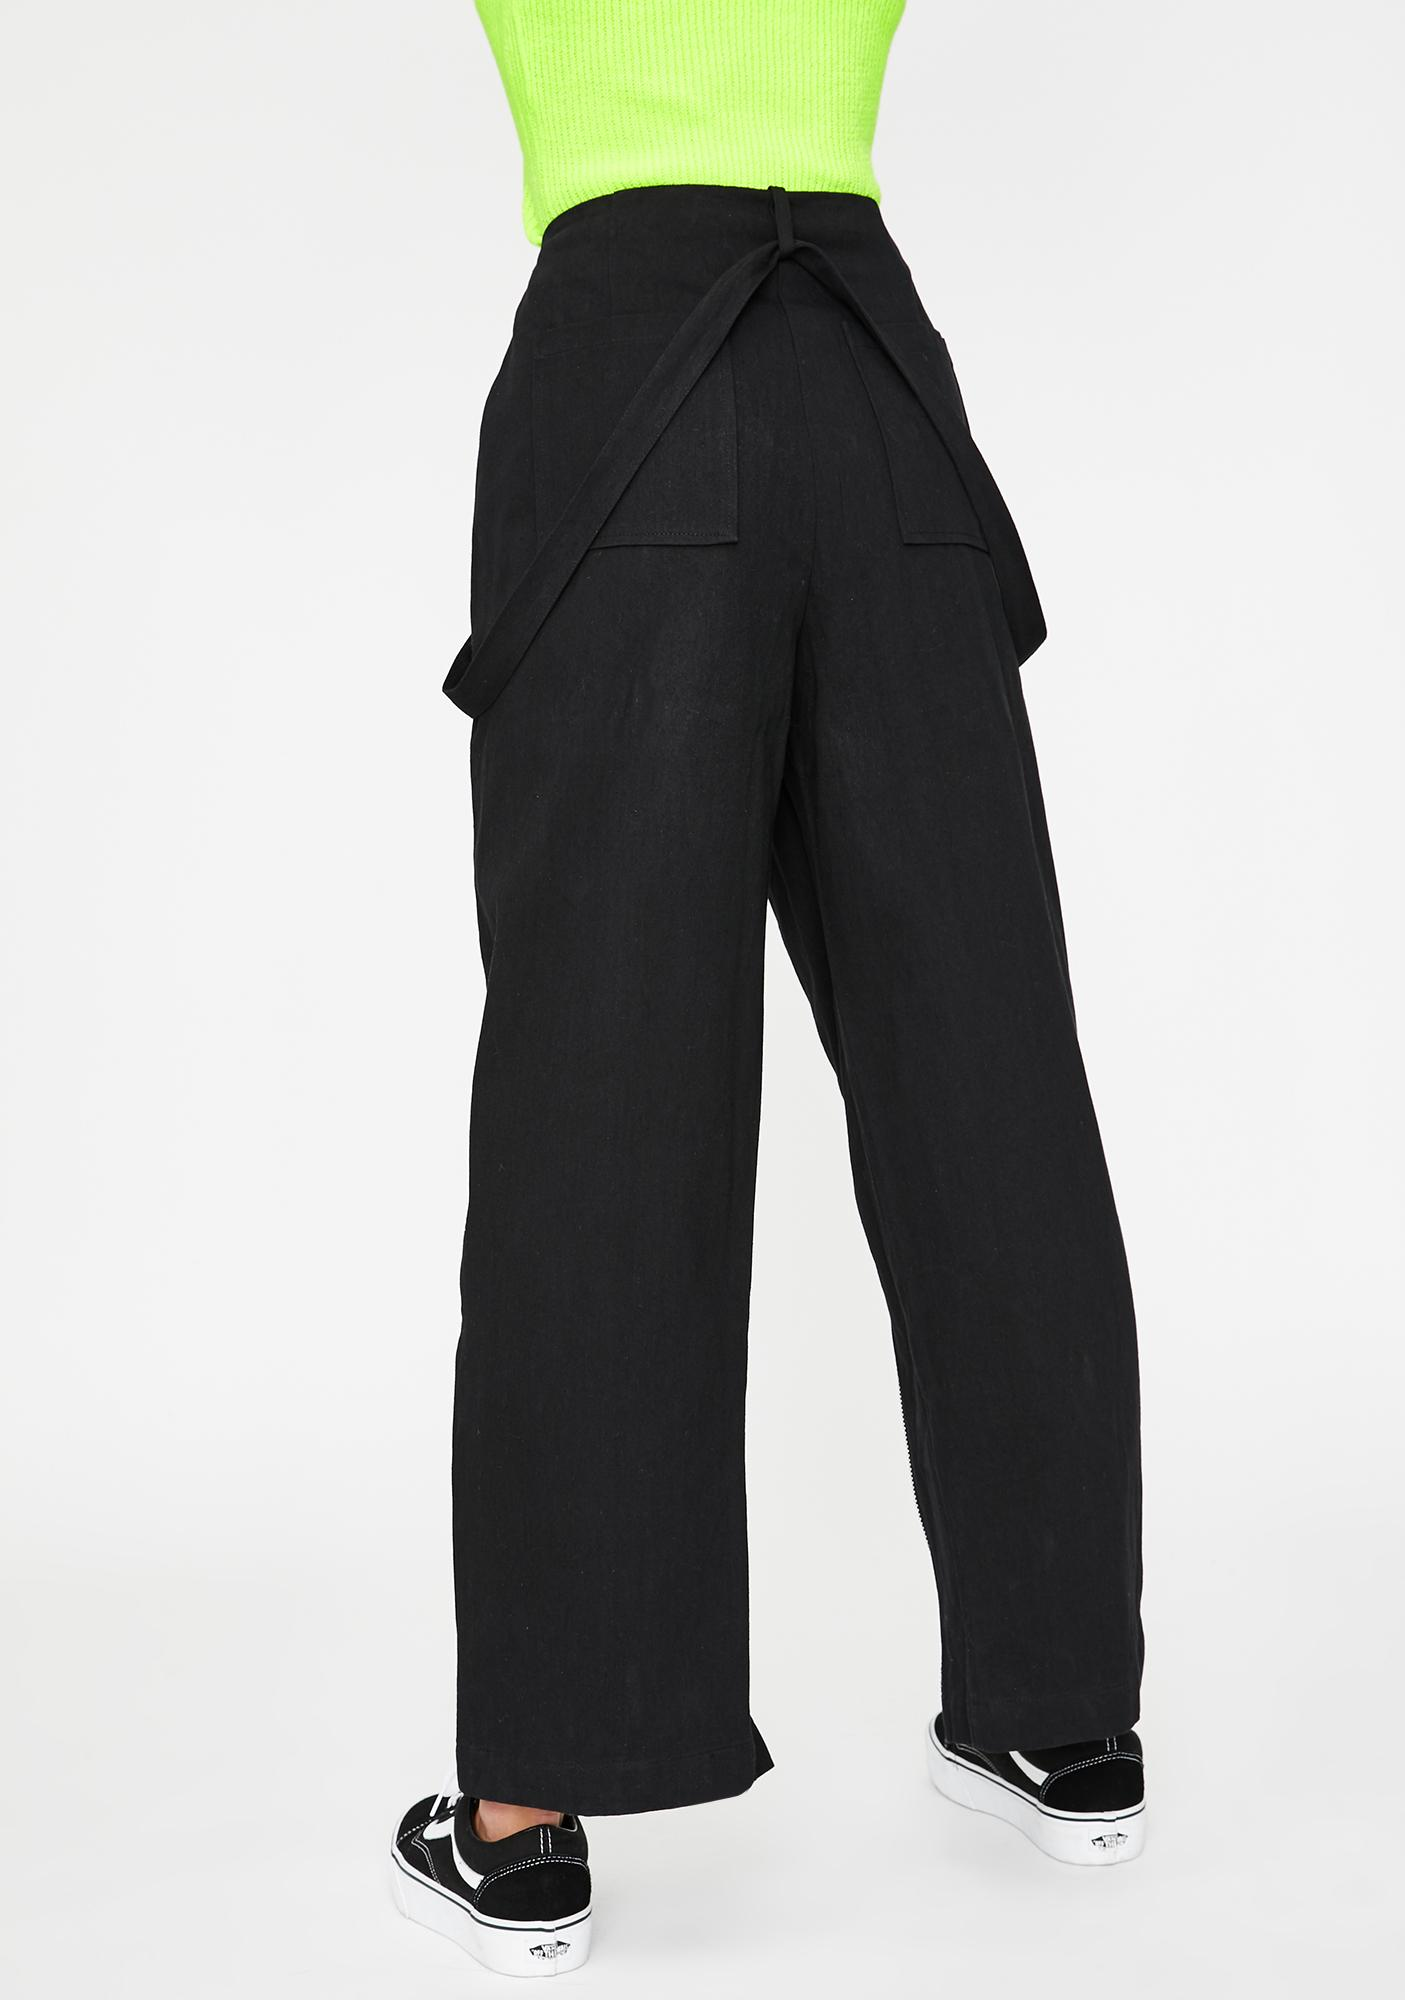 The Ragged Priest Mistake Suspender Pants